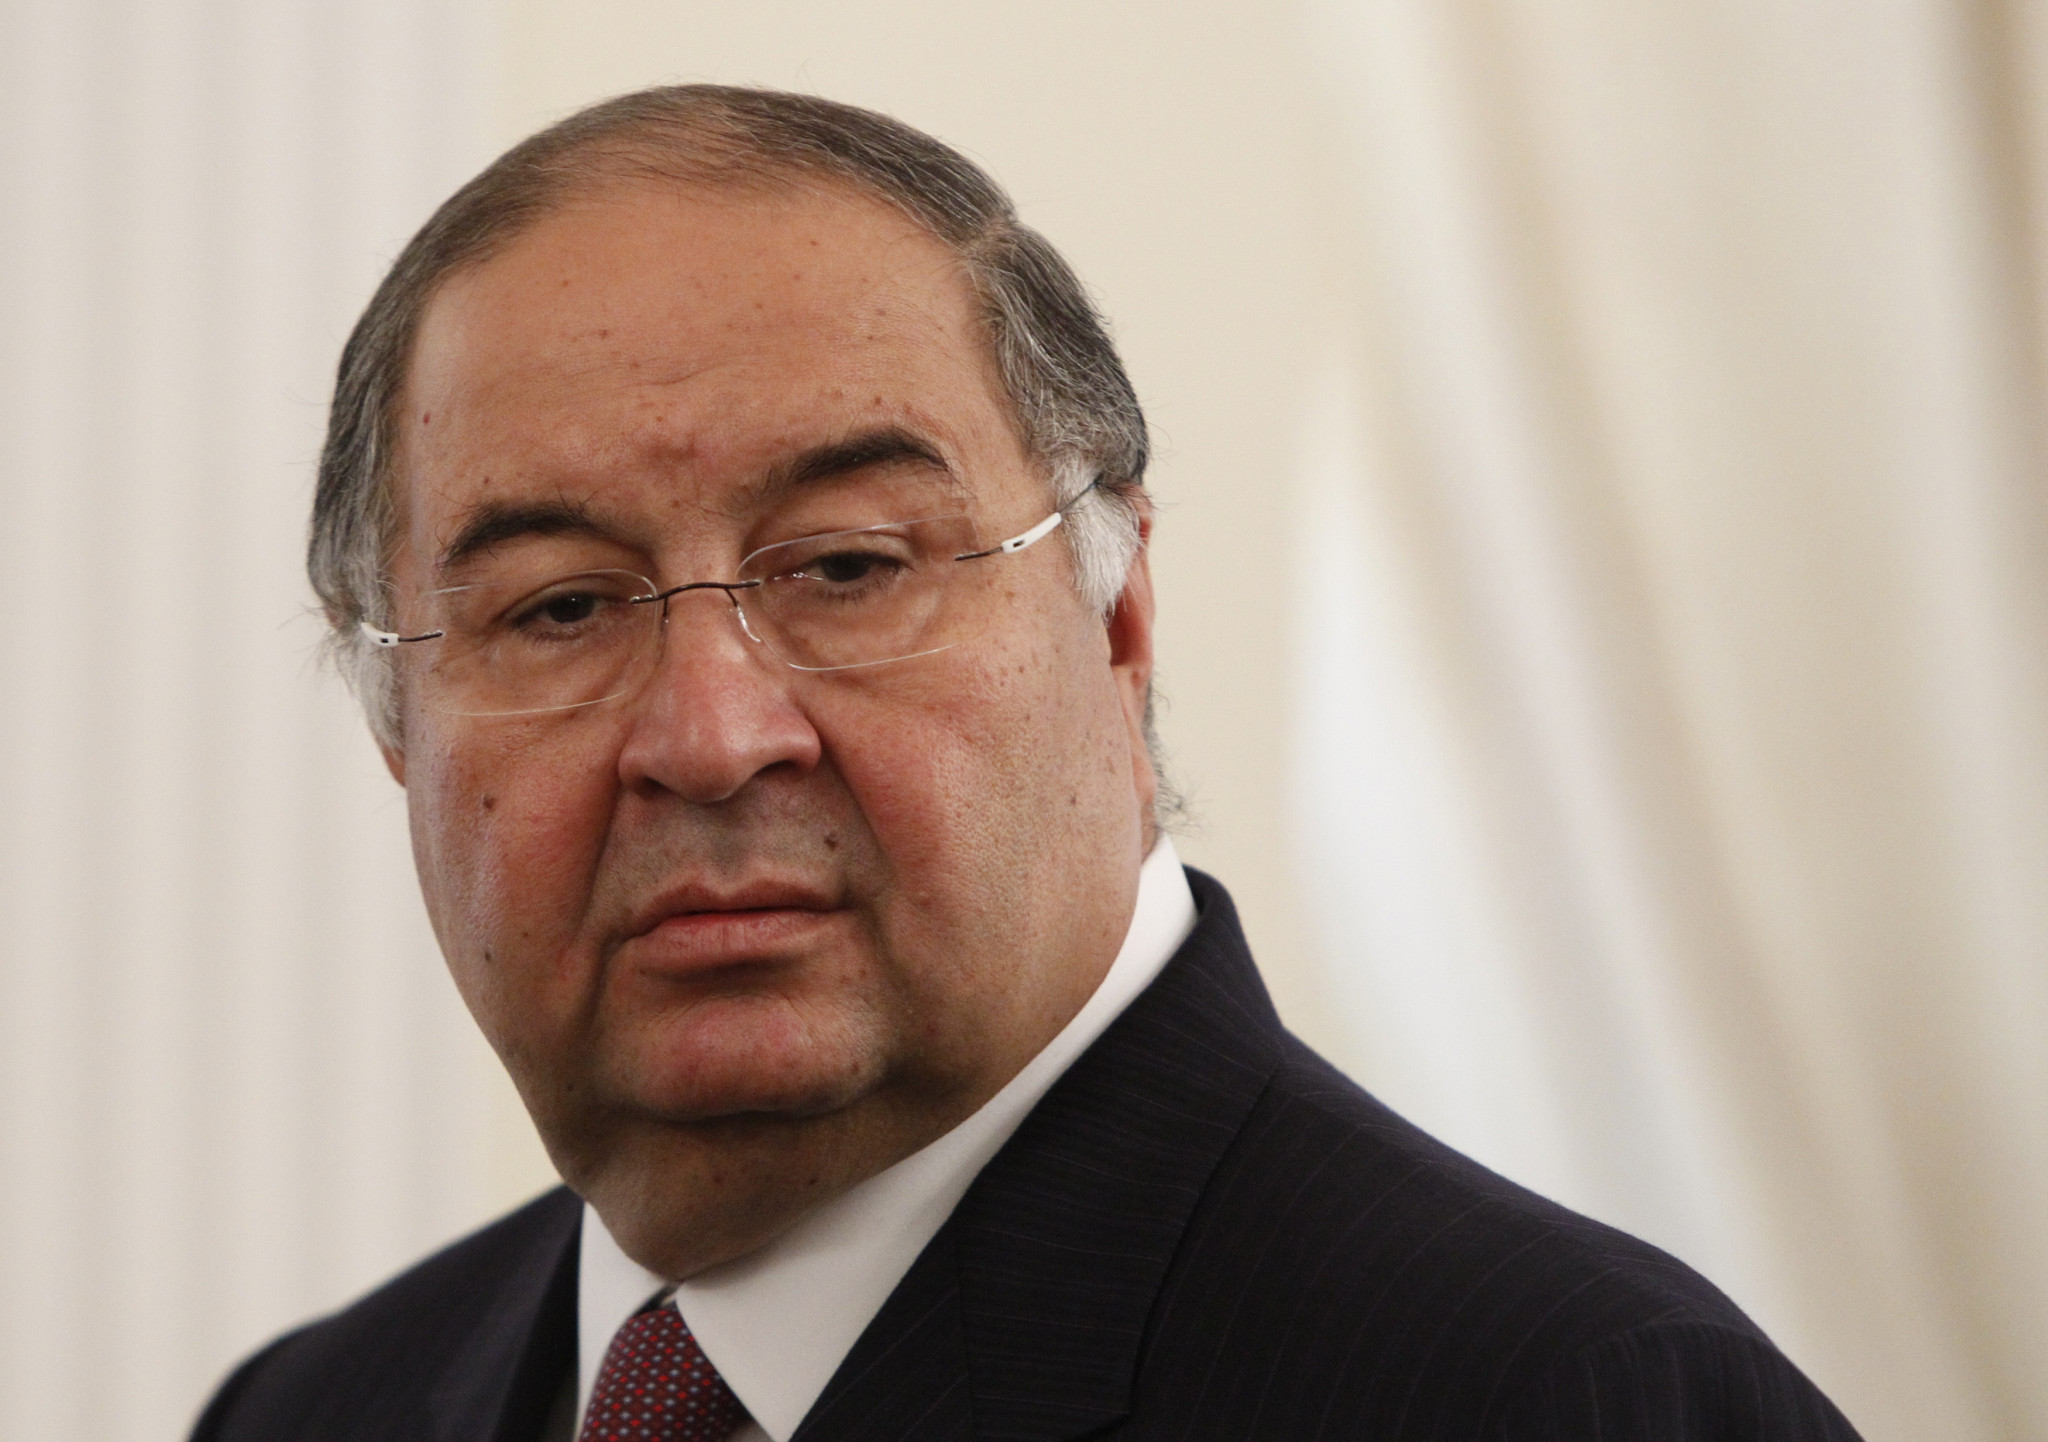 Usmanov pledges to increase fencing's popularity at FIE Congress